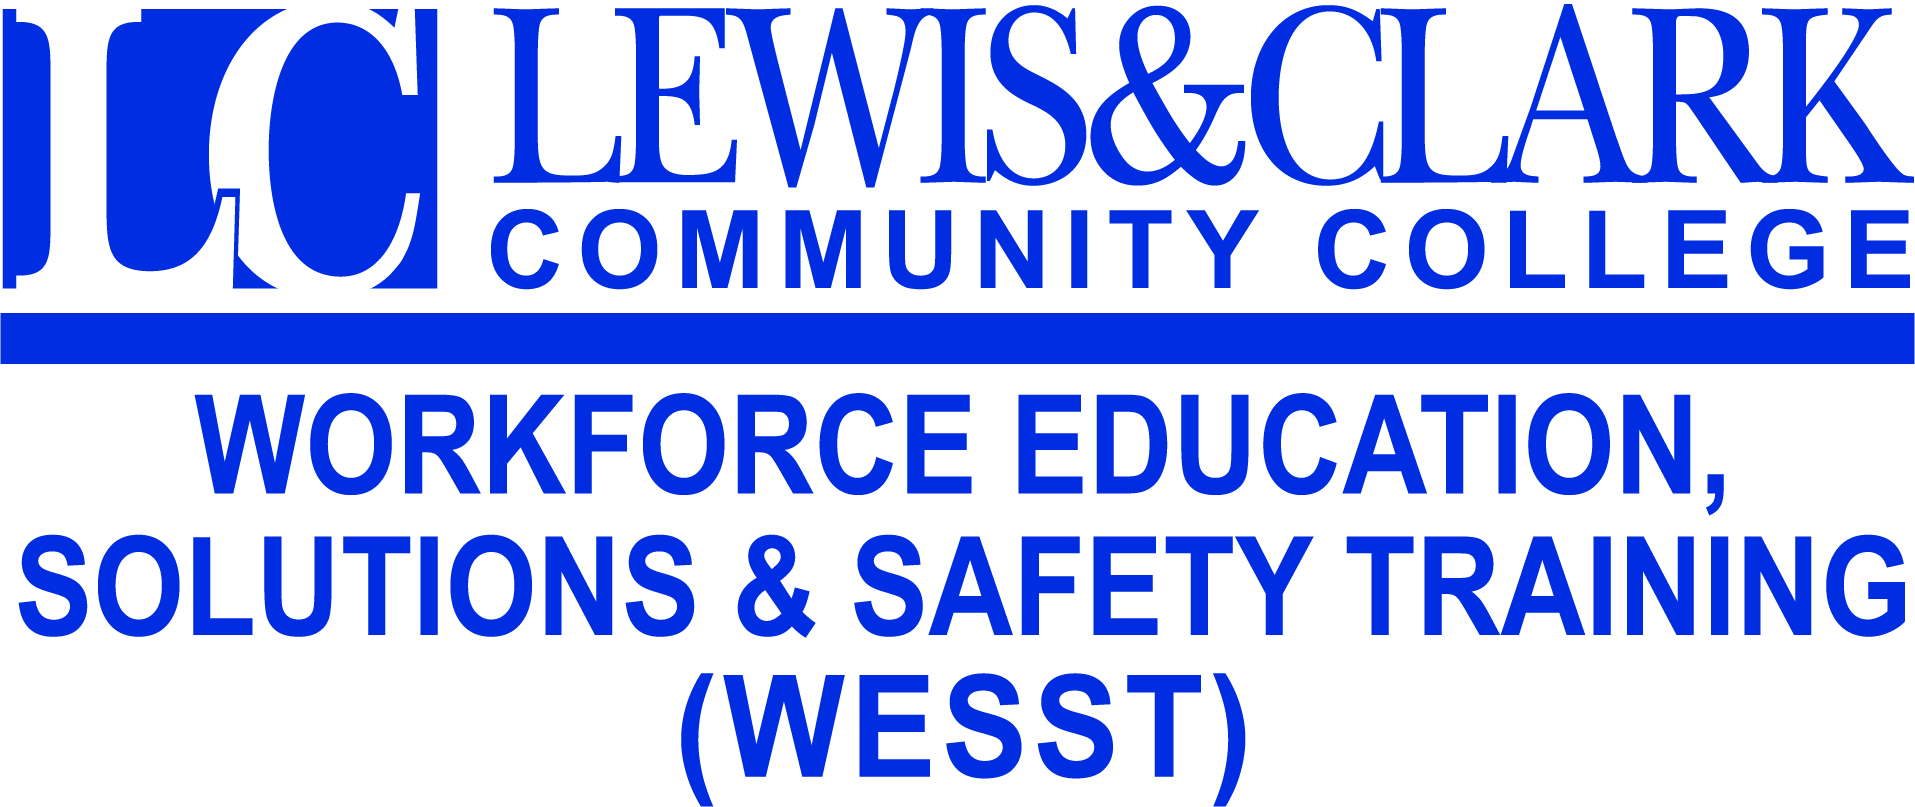 Lewis and clark community college wesst logofull 1betcityfo Choice Image